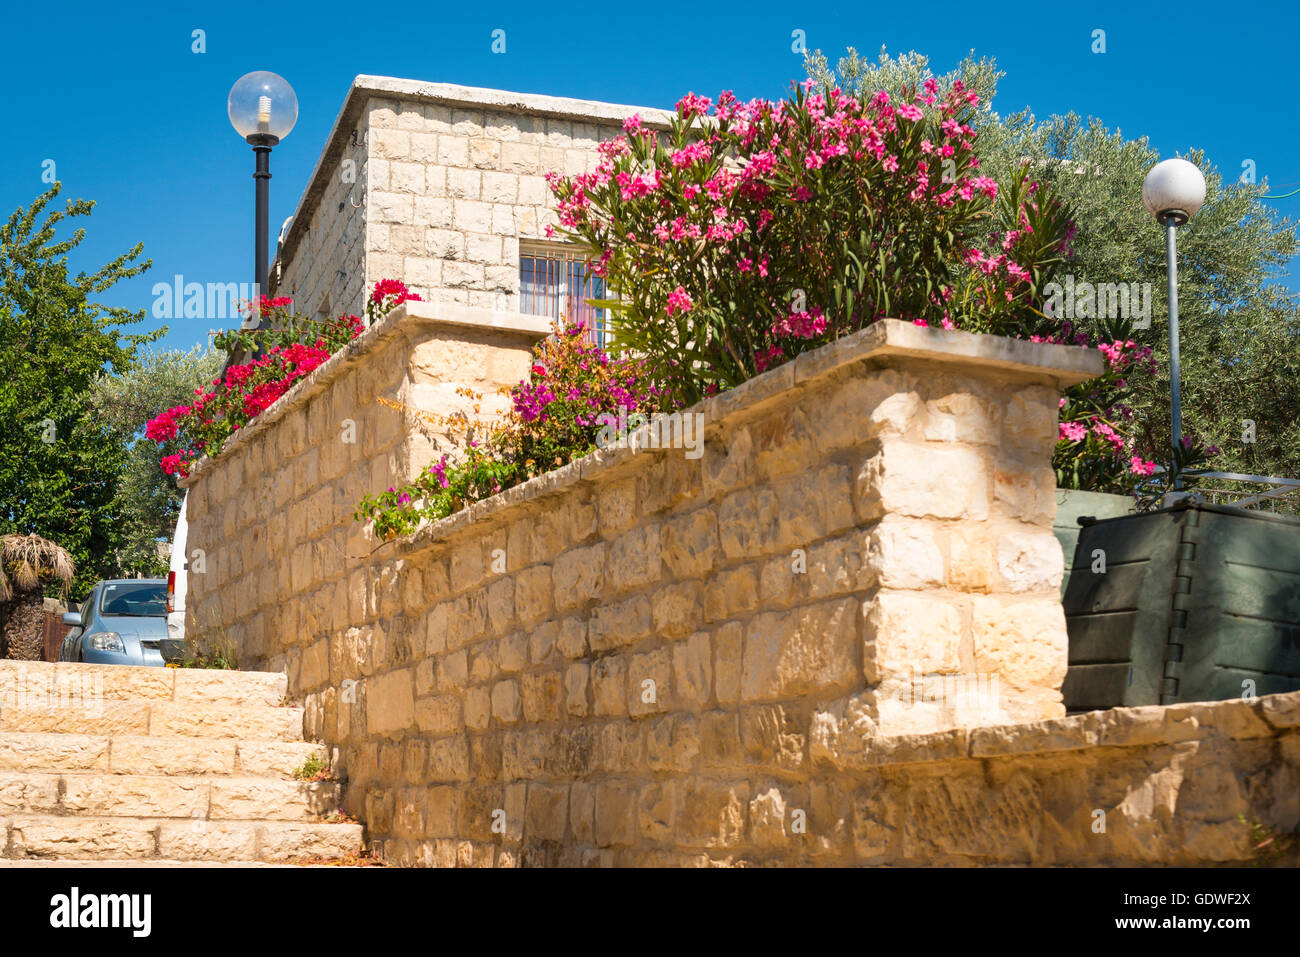 Israel Safed Zefat Tsefat Tsfat highest city in Israel holy site centre of Jewish Mysticism Kabbala since 1600 & - Stock Image